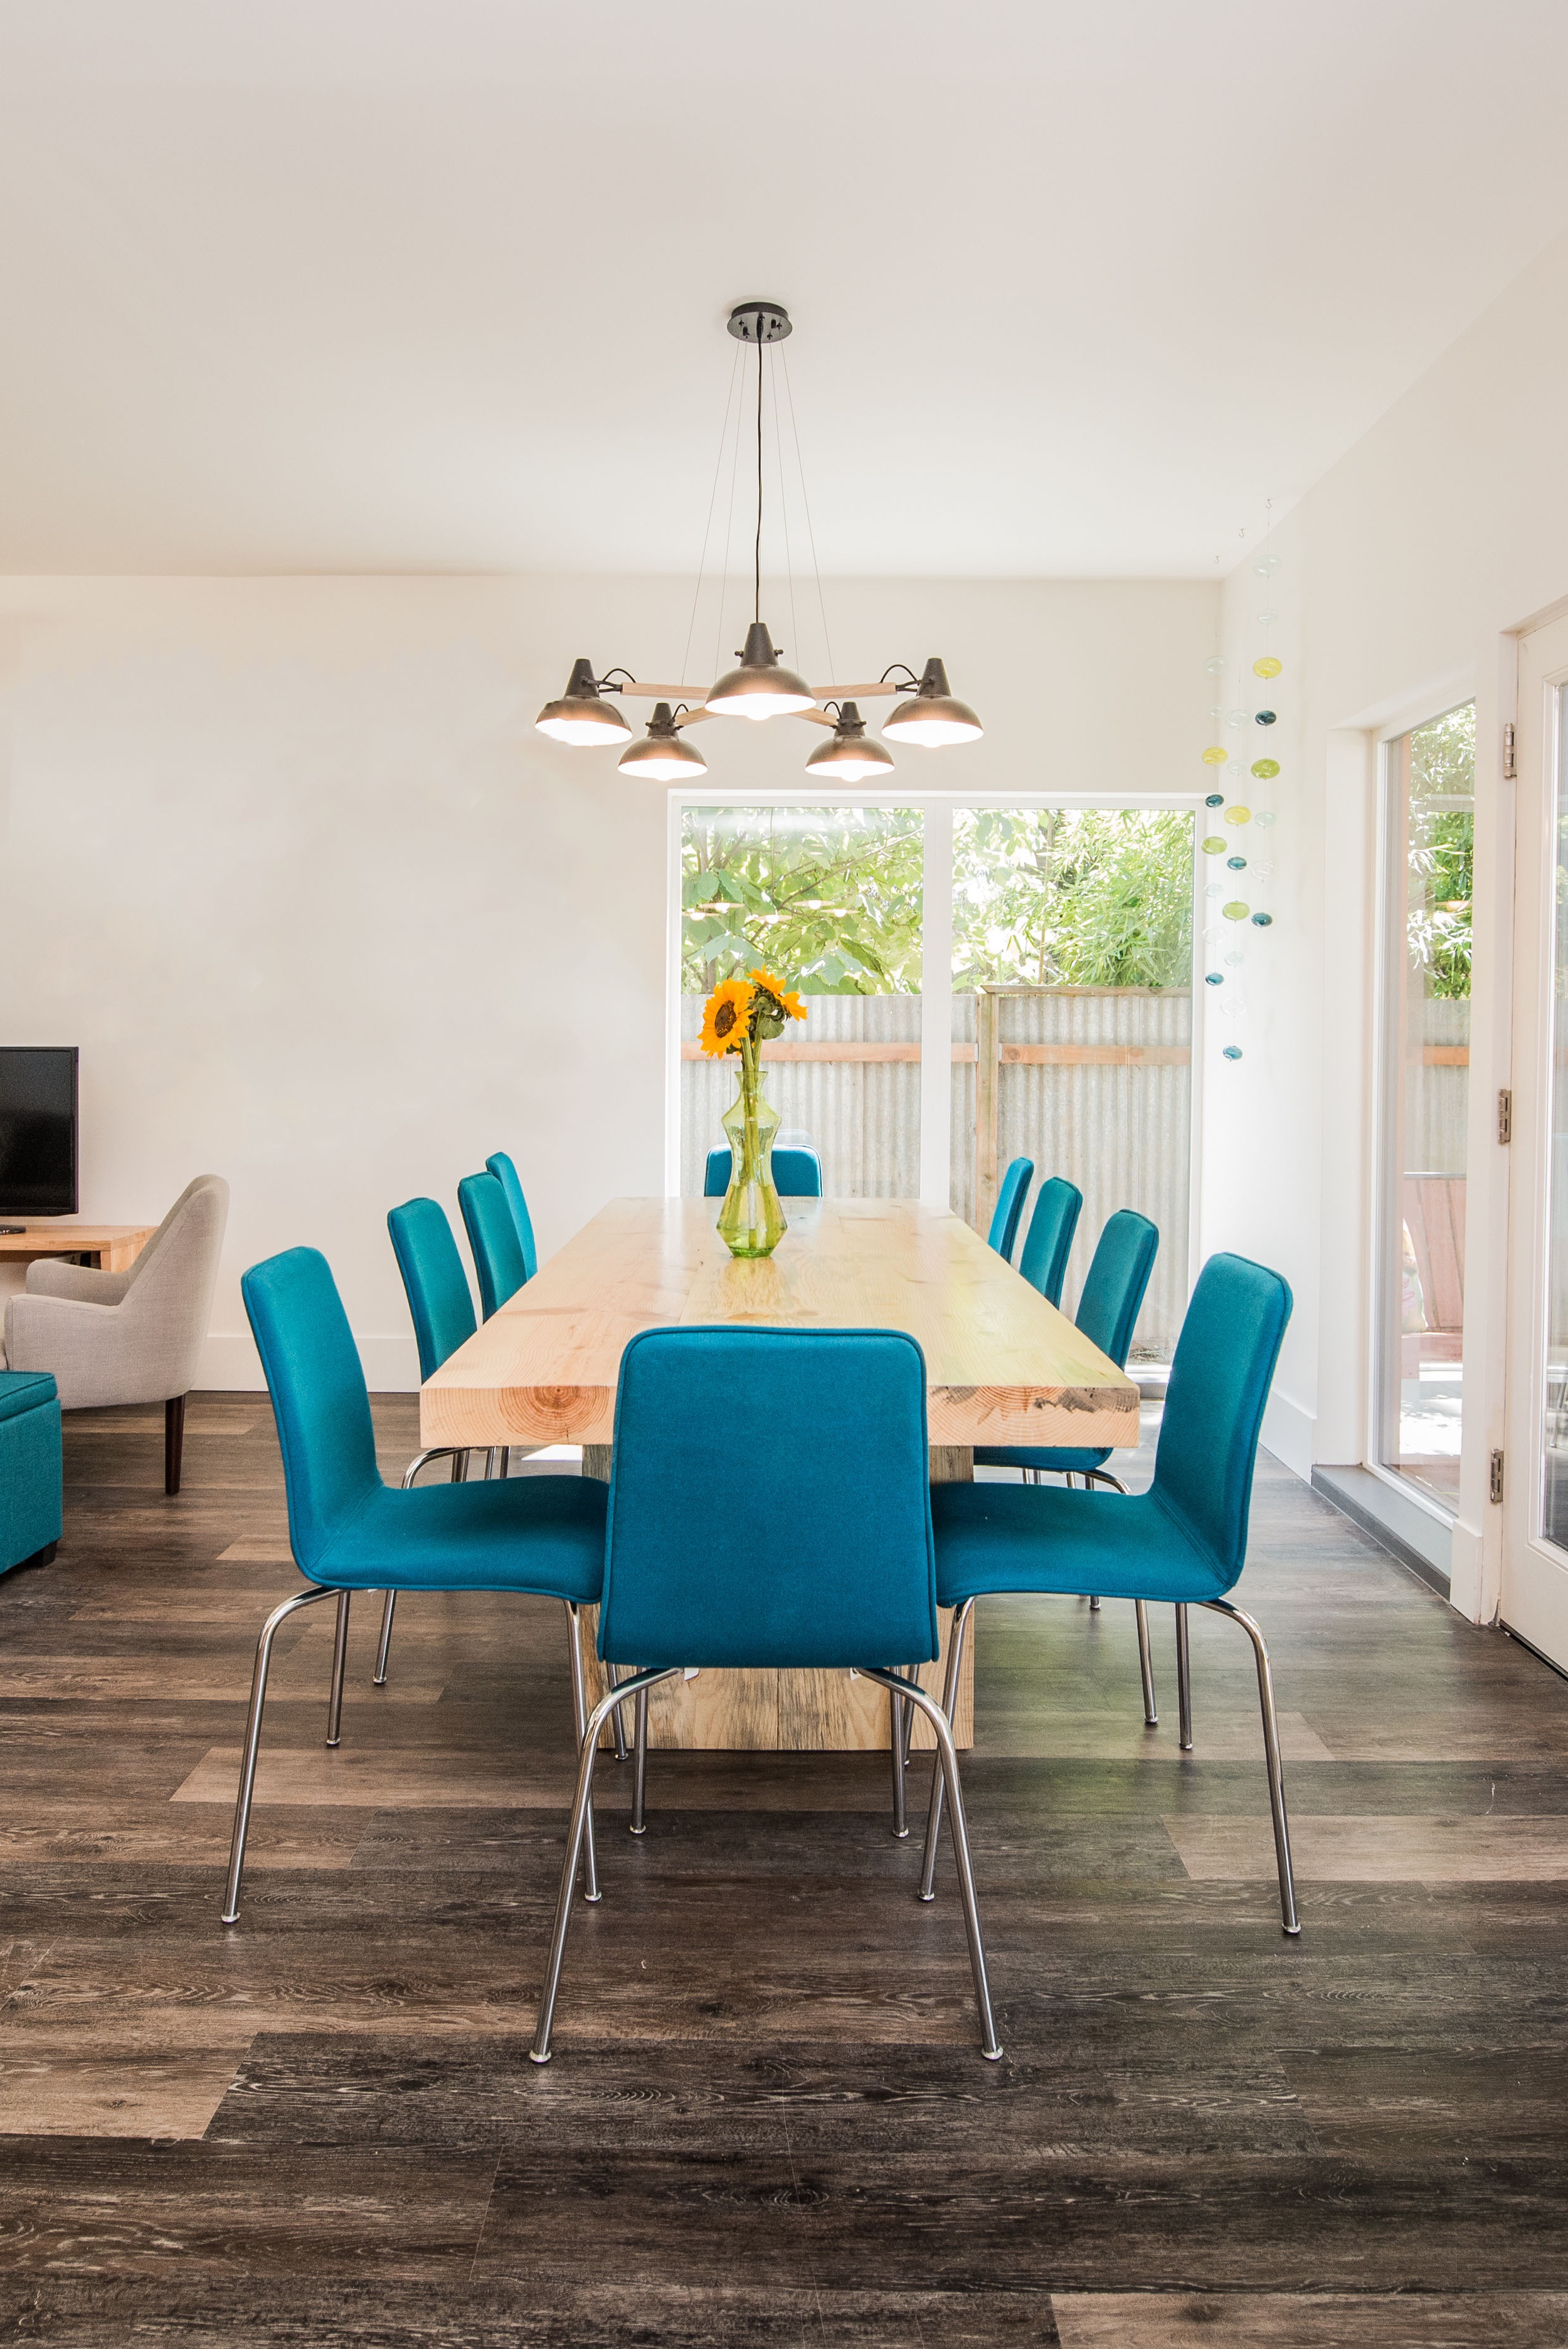 Contemporary Turquoise Dining Chairs With Hardwood Table With Flower Vase Accessories (Image 12 of 25)